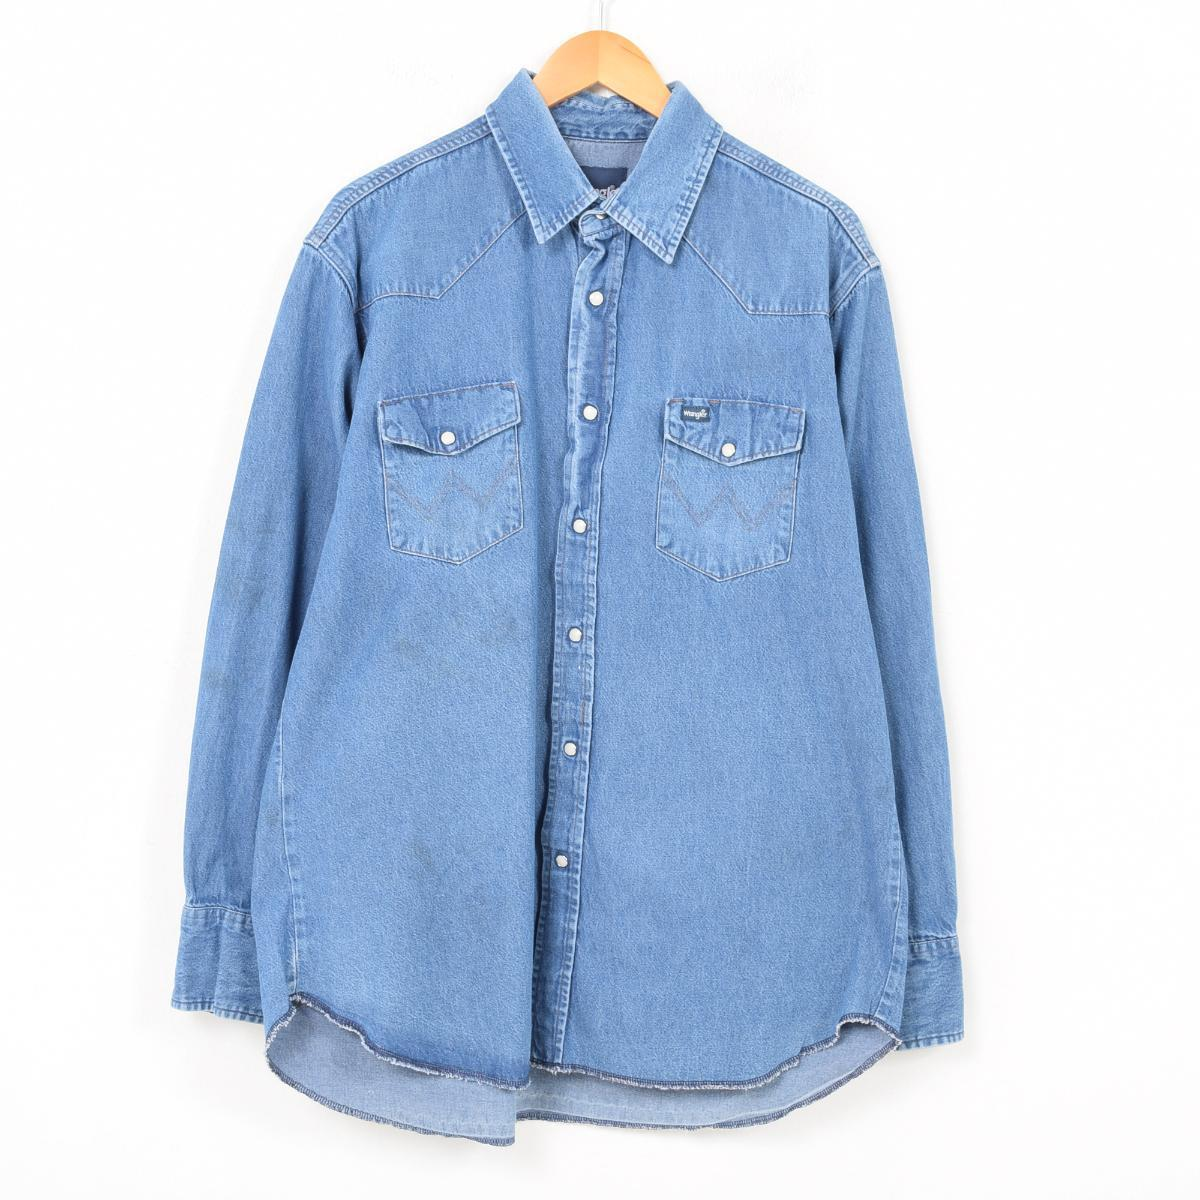 9388ea4e9d VINTAGE CLOTHING JAM  Wrangler Wrangler long sleeves denim western ...